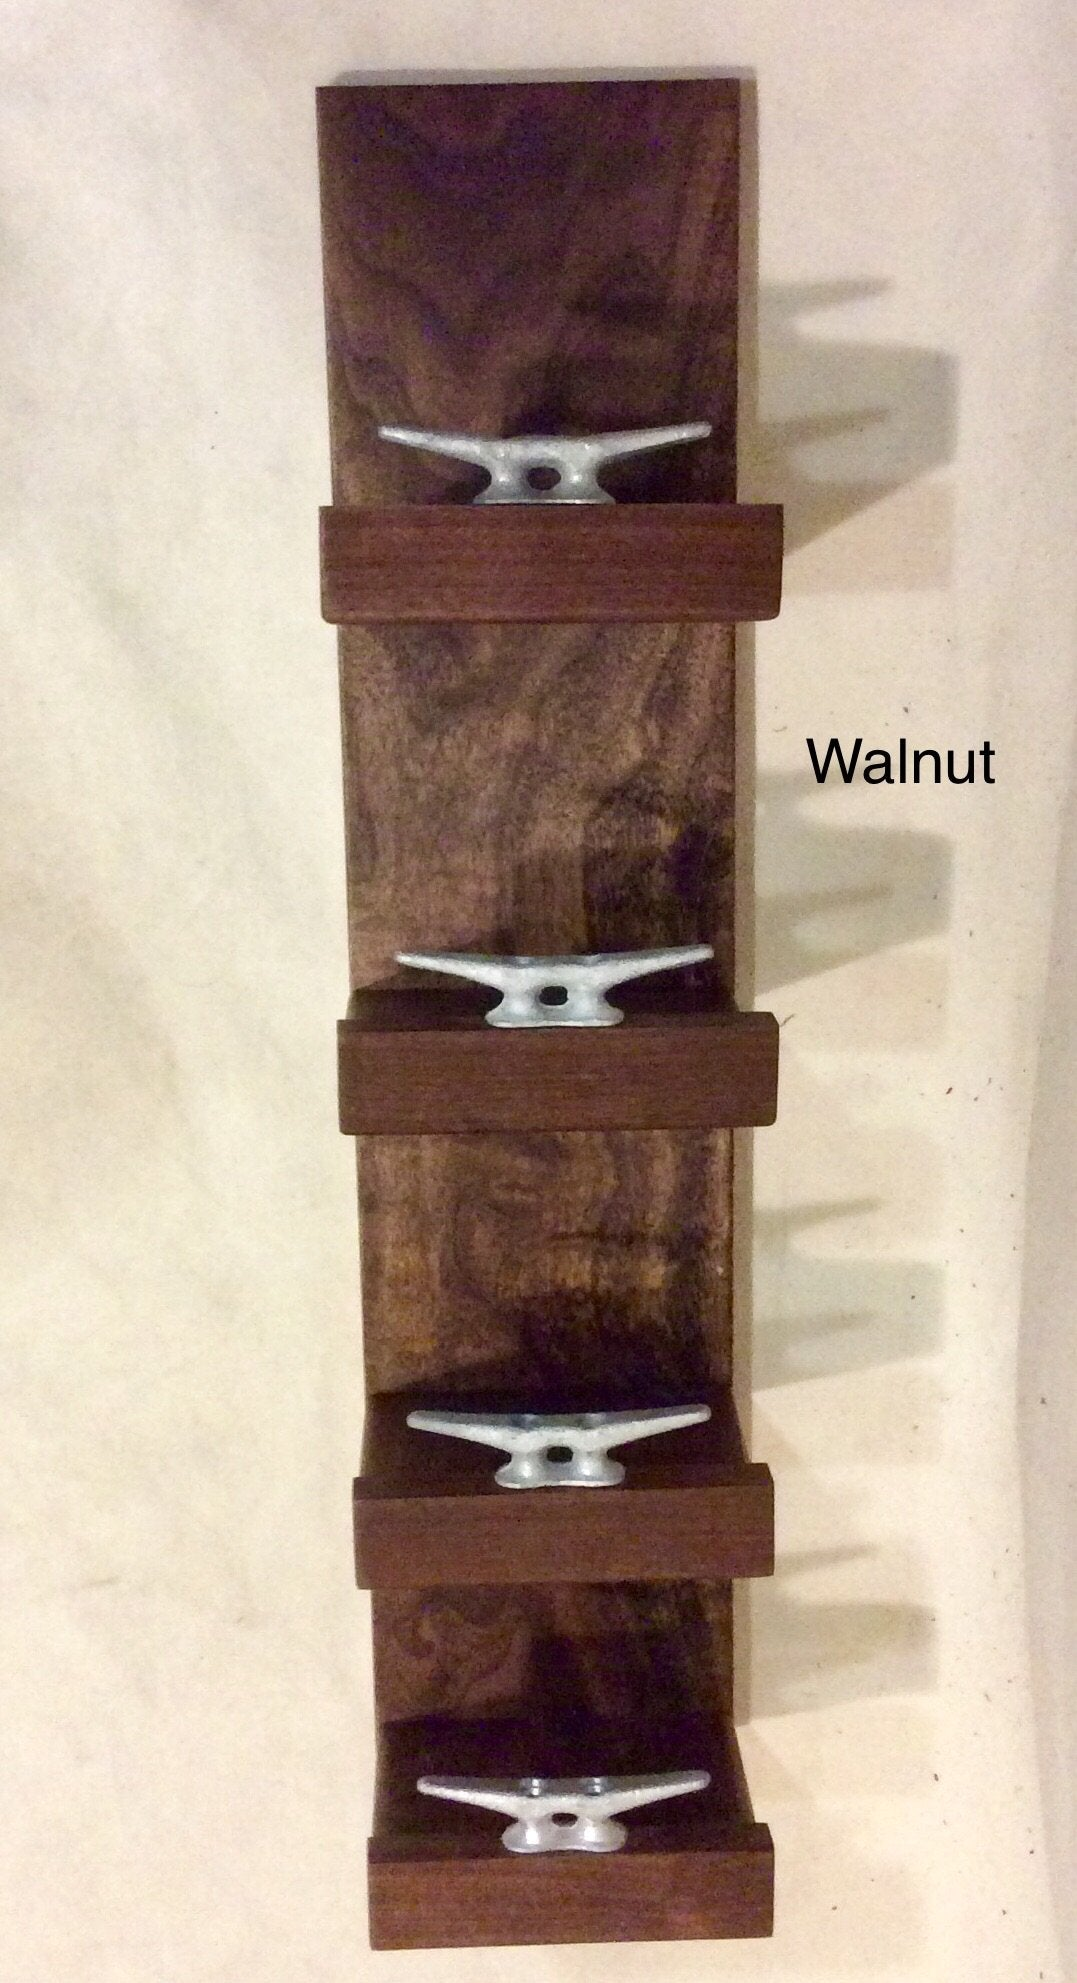 Towel rack w/4 shelves